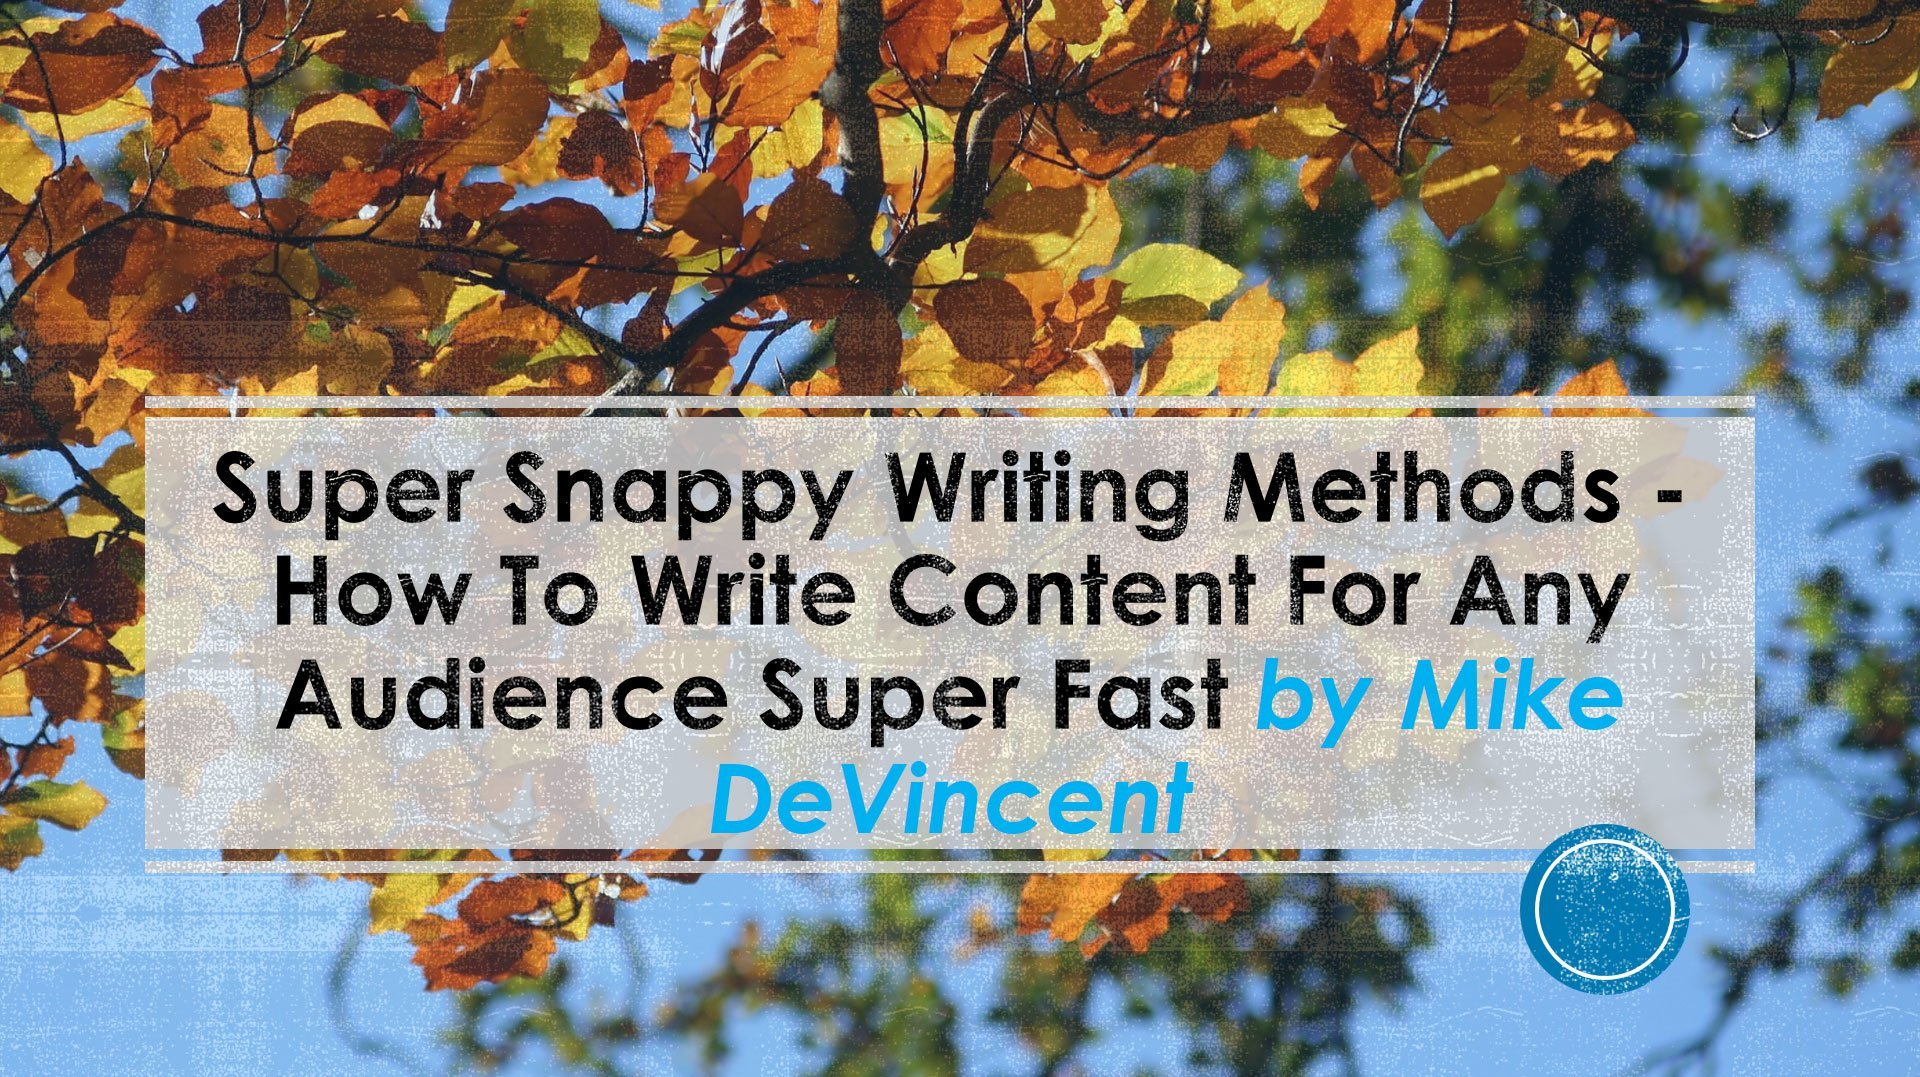 Super Snappy Writing Methods - How To Write Content For Any Audience Super Fast